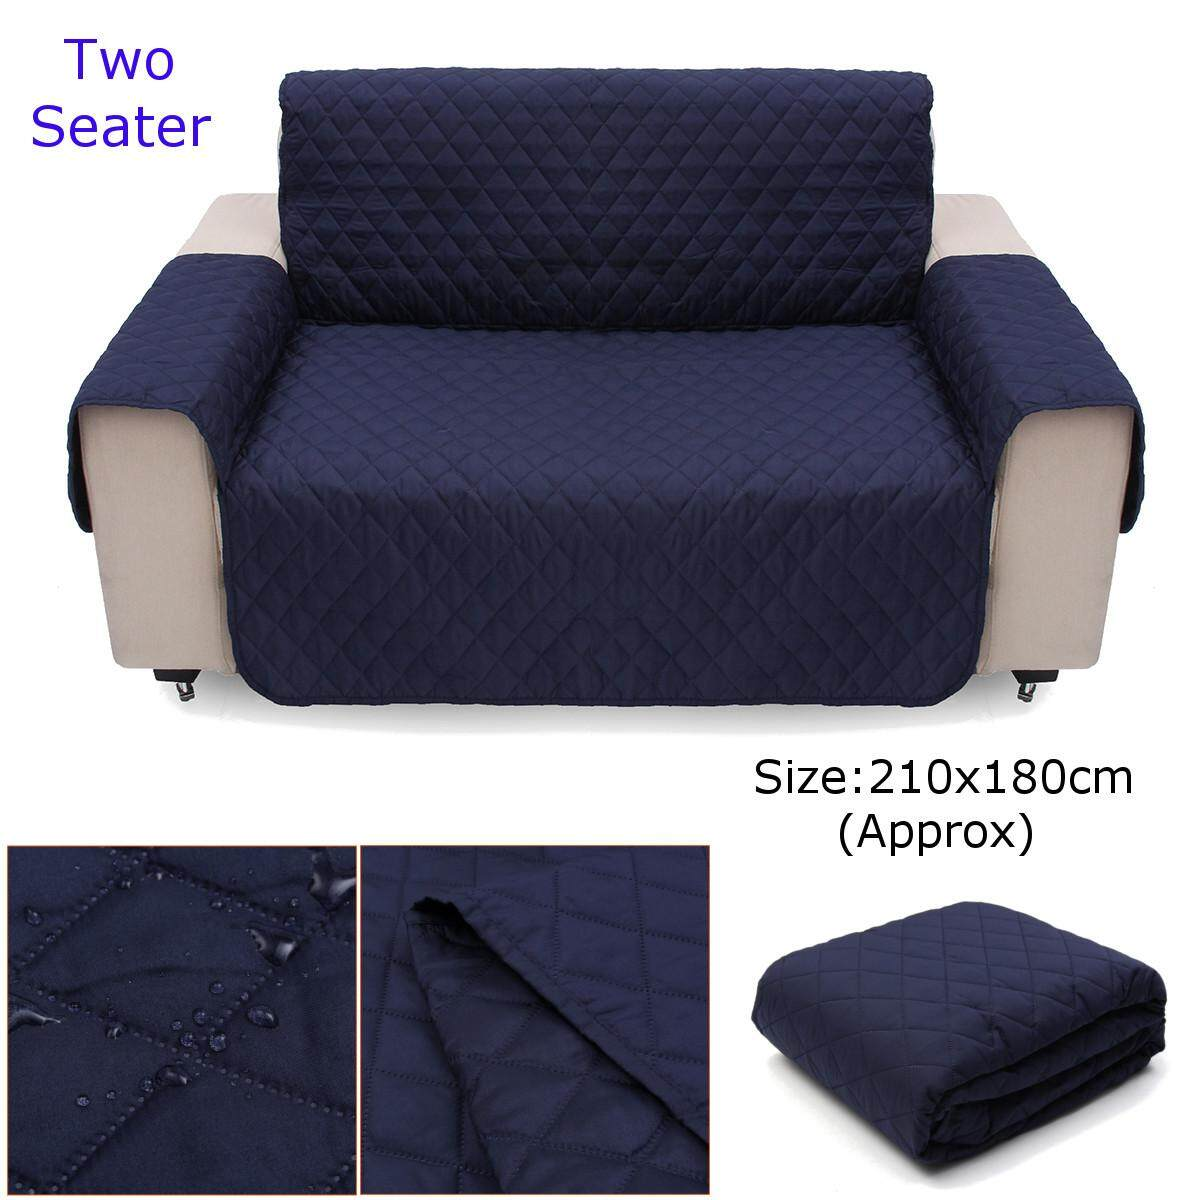 Couch Sofa Cover Removable Quilted Slipcover Pet Protector W Strap 2 Seater Black Blue Beige